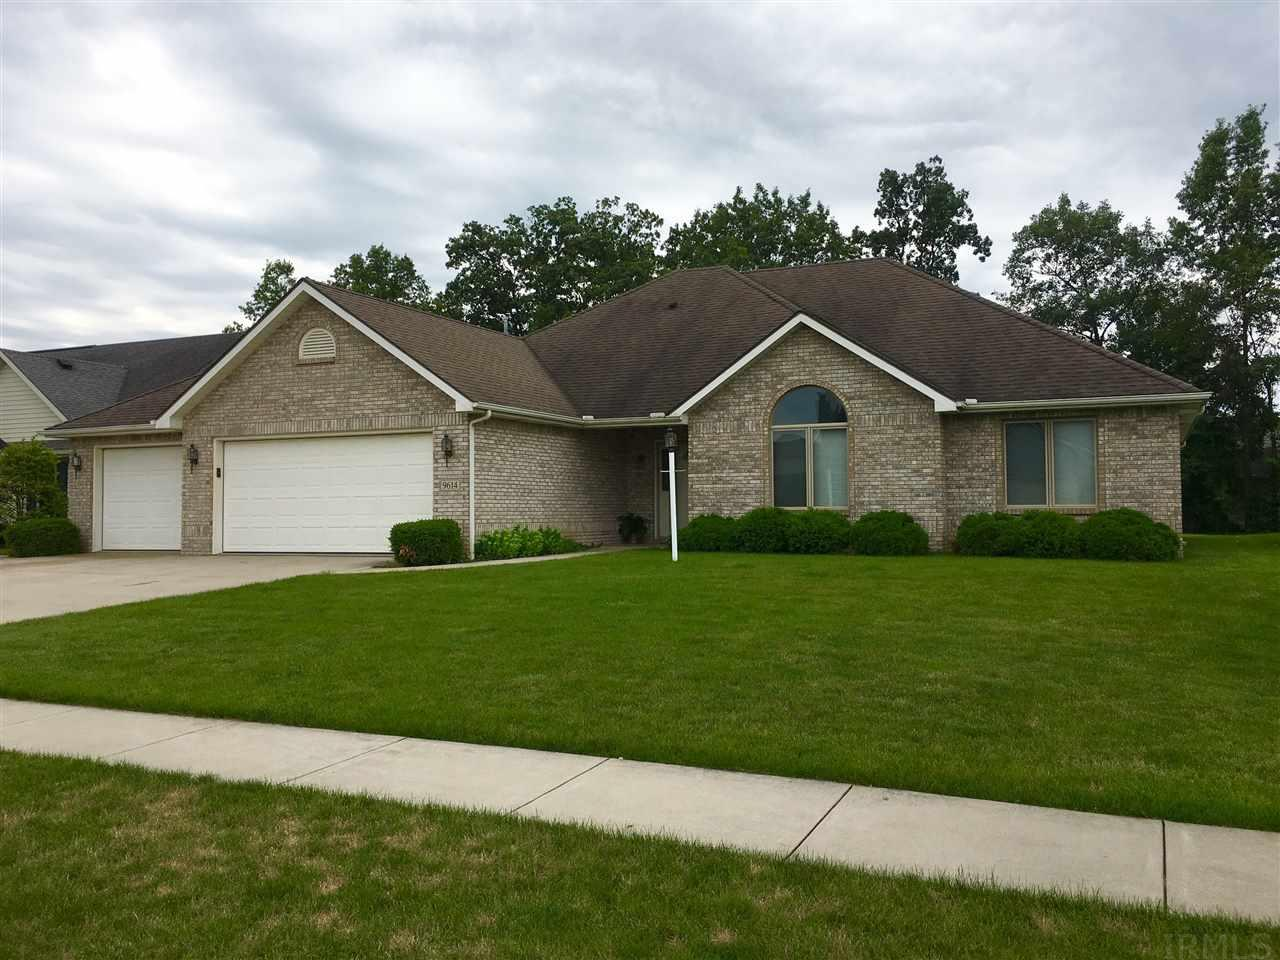 9614 Shellbrook, Fort Wayne, IN 46835